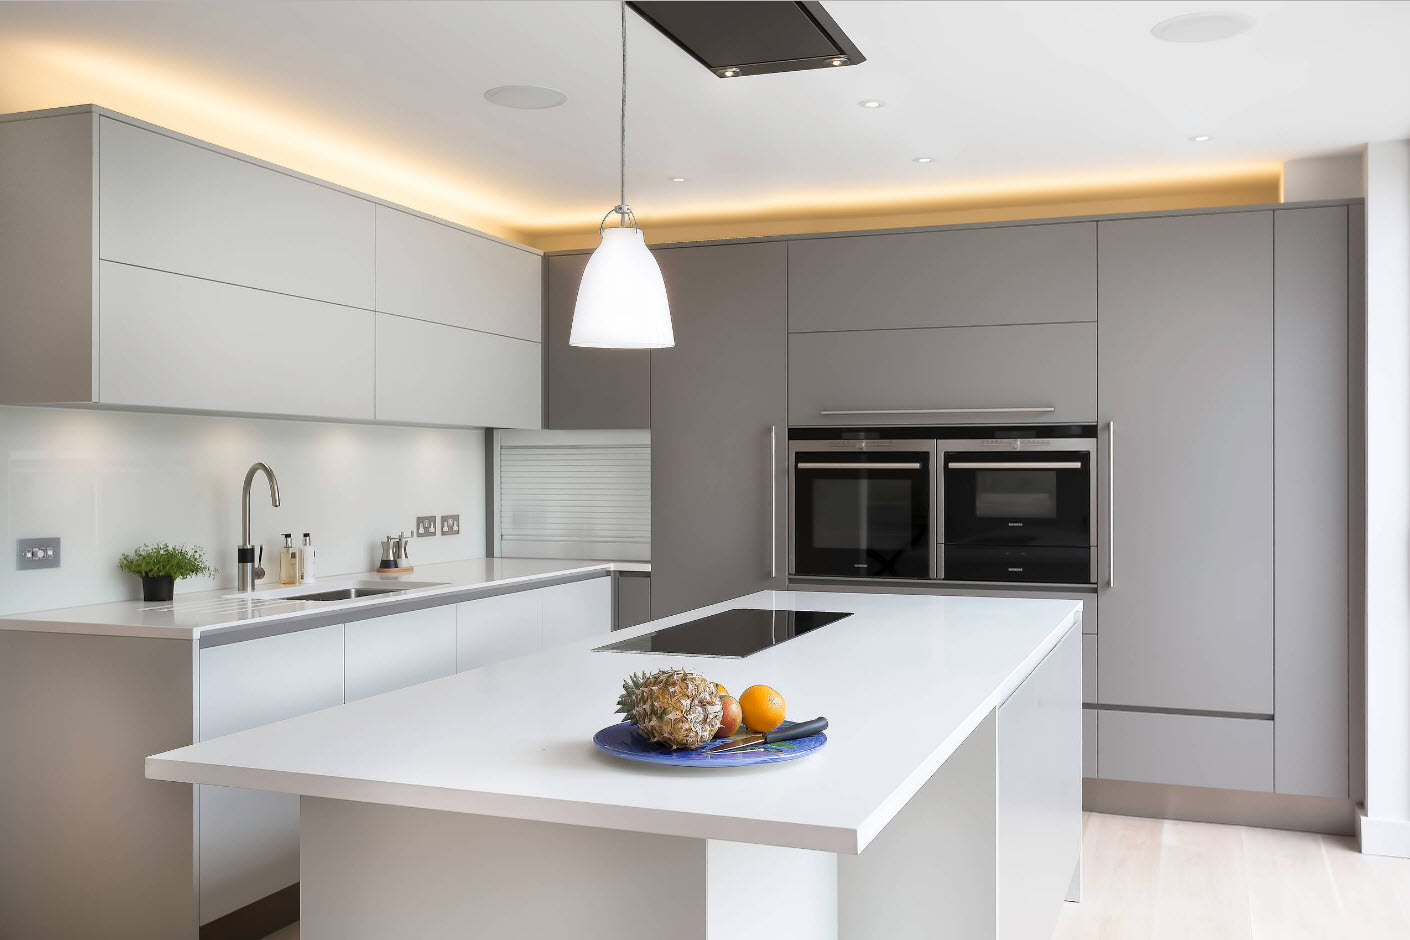 Gray minimalsitic kitchen furniture and solid white splashback